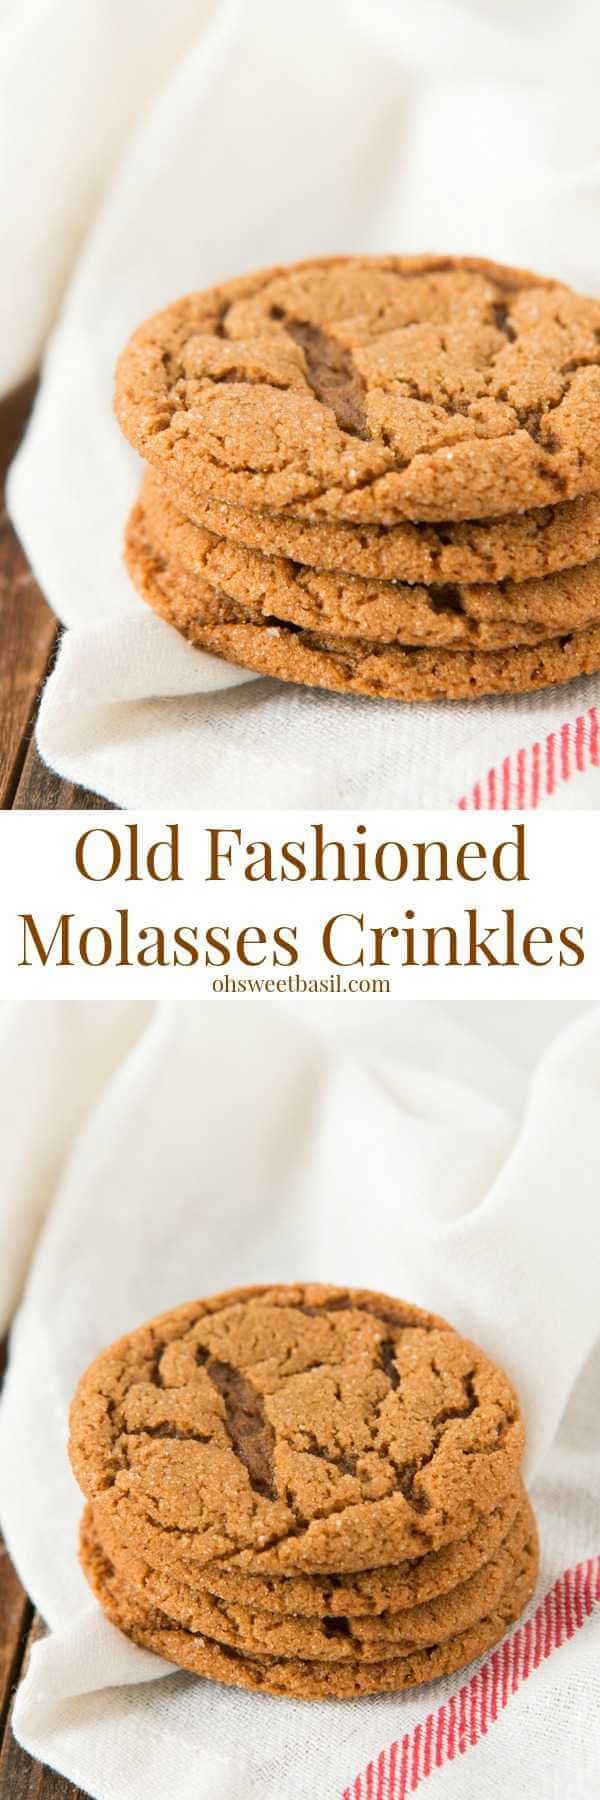 recipe: molasses crinkles recipe butter [28]